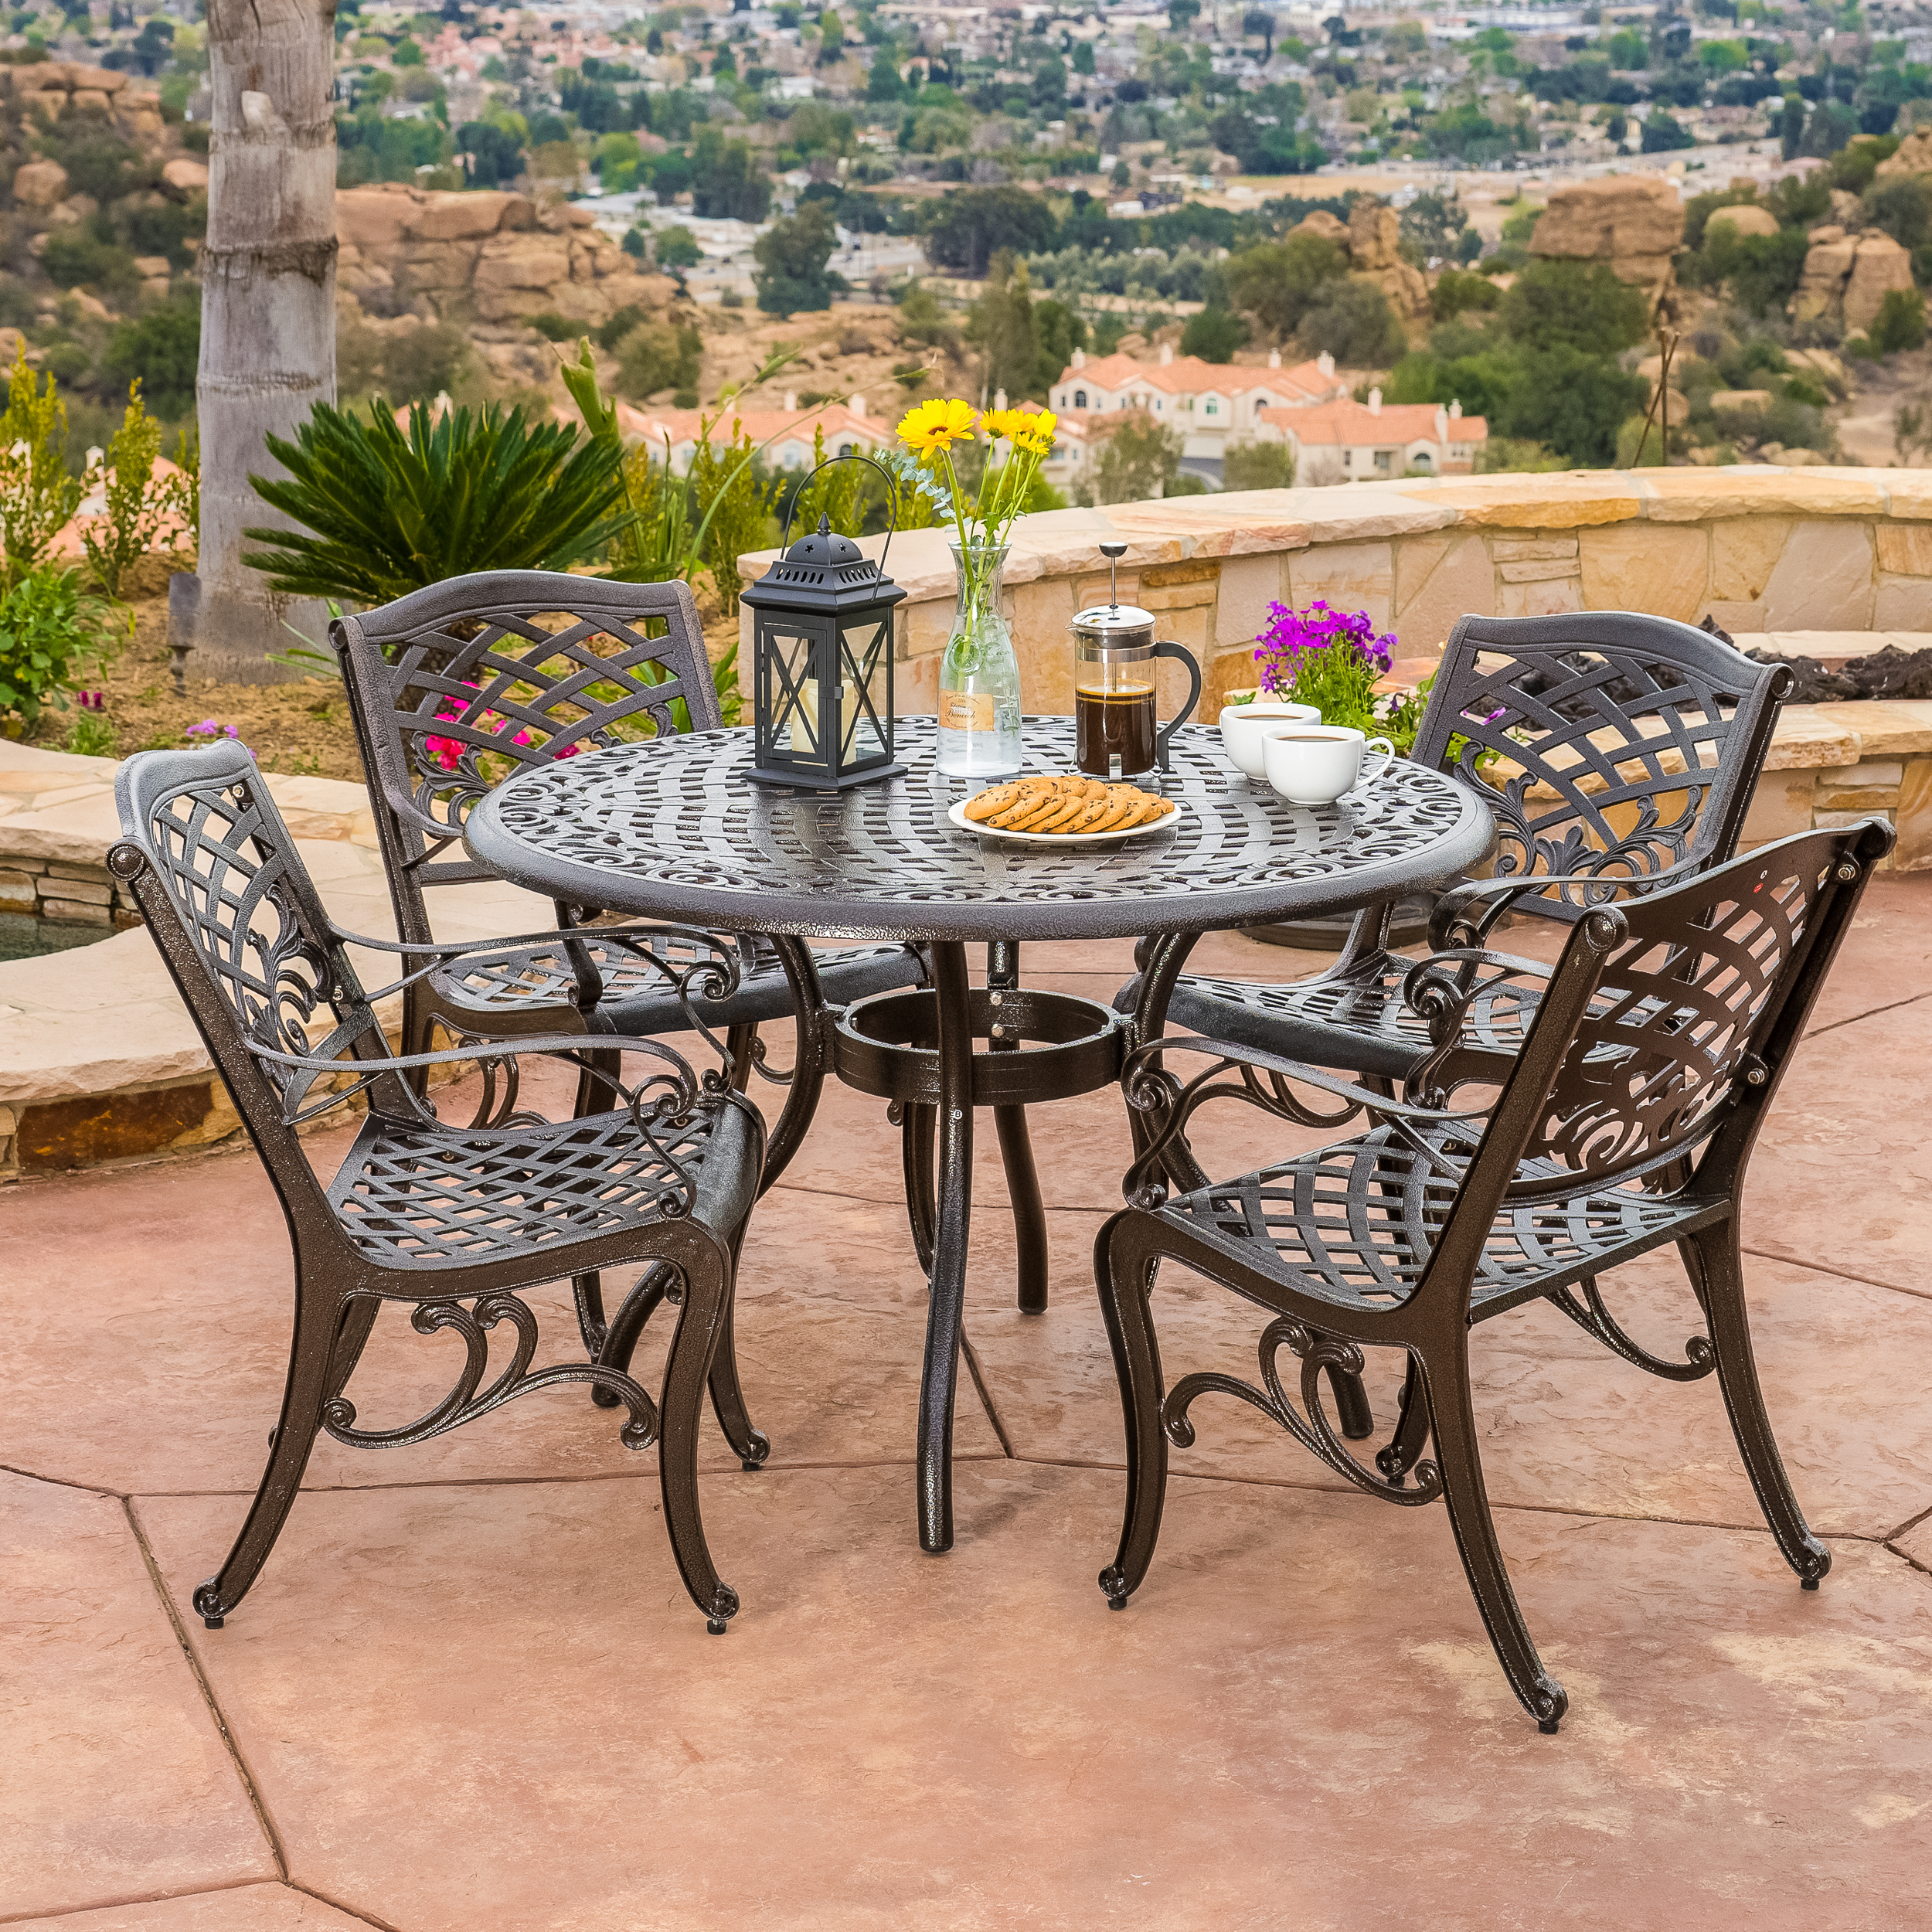 Superior Outdoor 5 Piece Cast Aluminum Outdoor Dining Set, Bronze